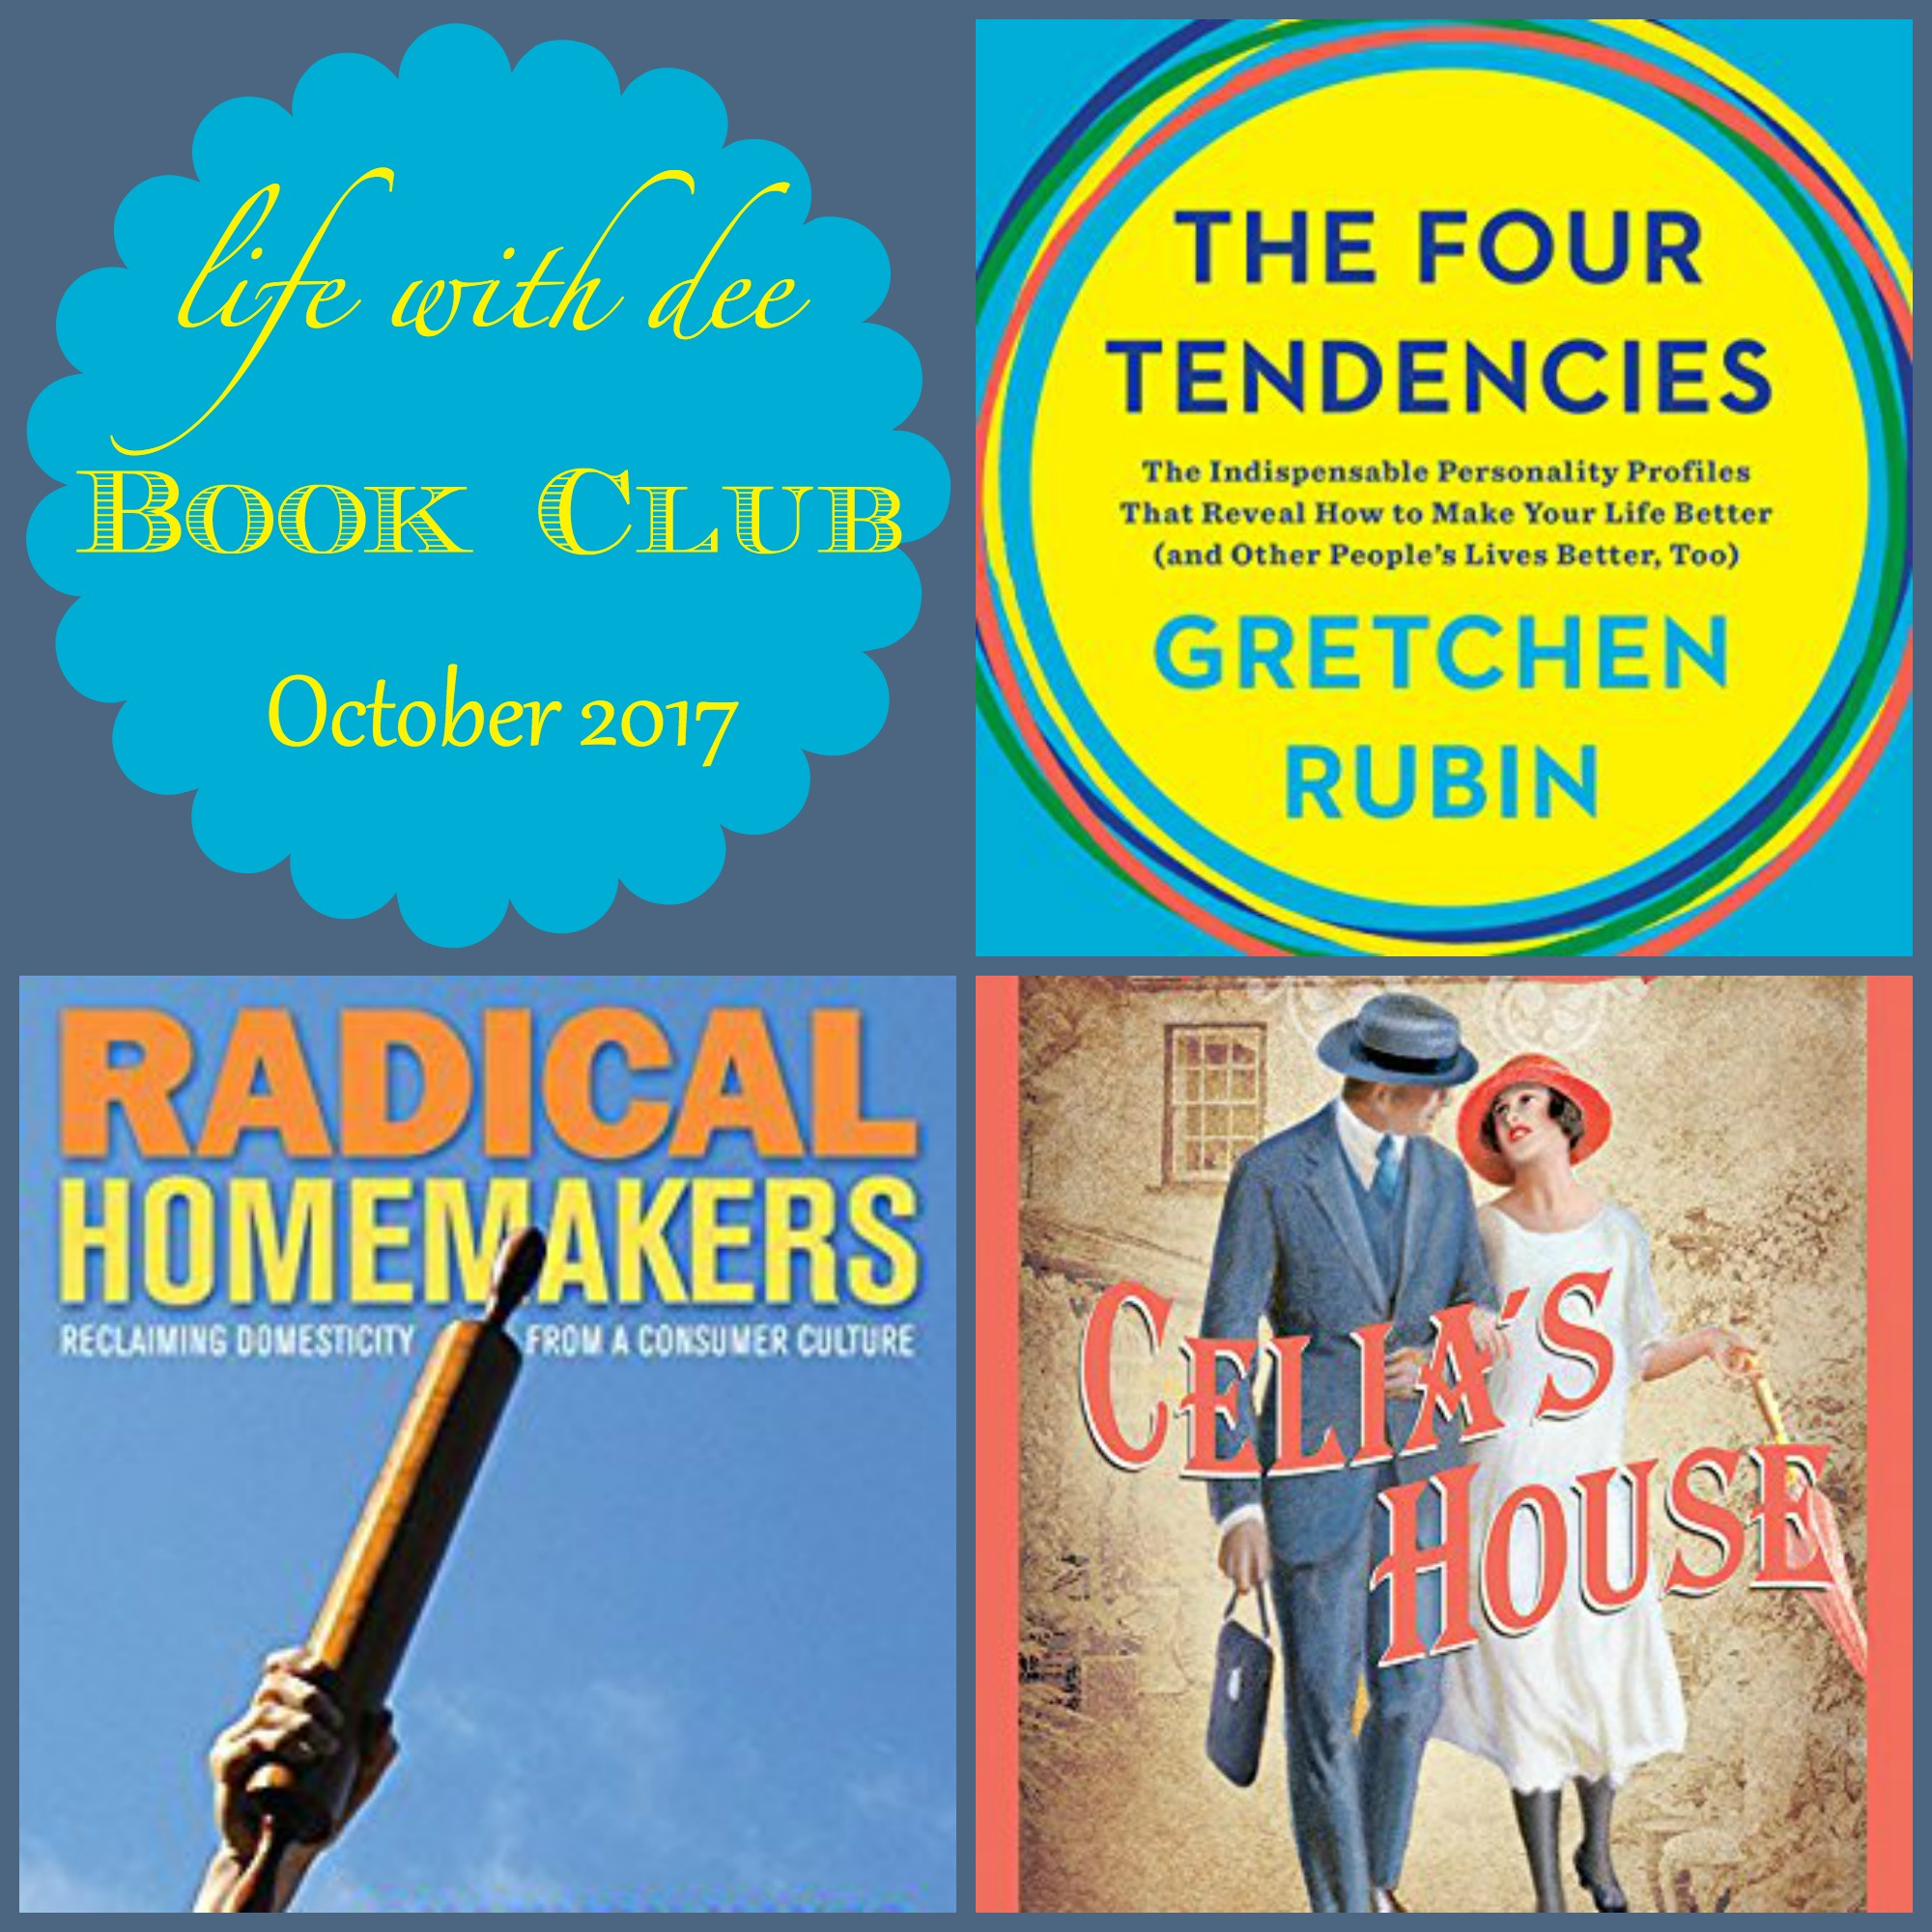 LWD Book Club October 2017